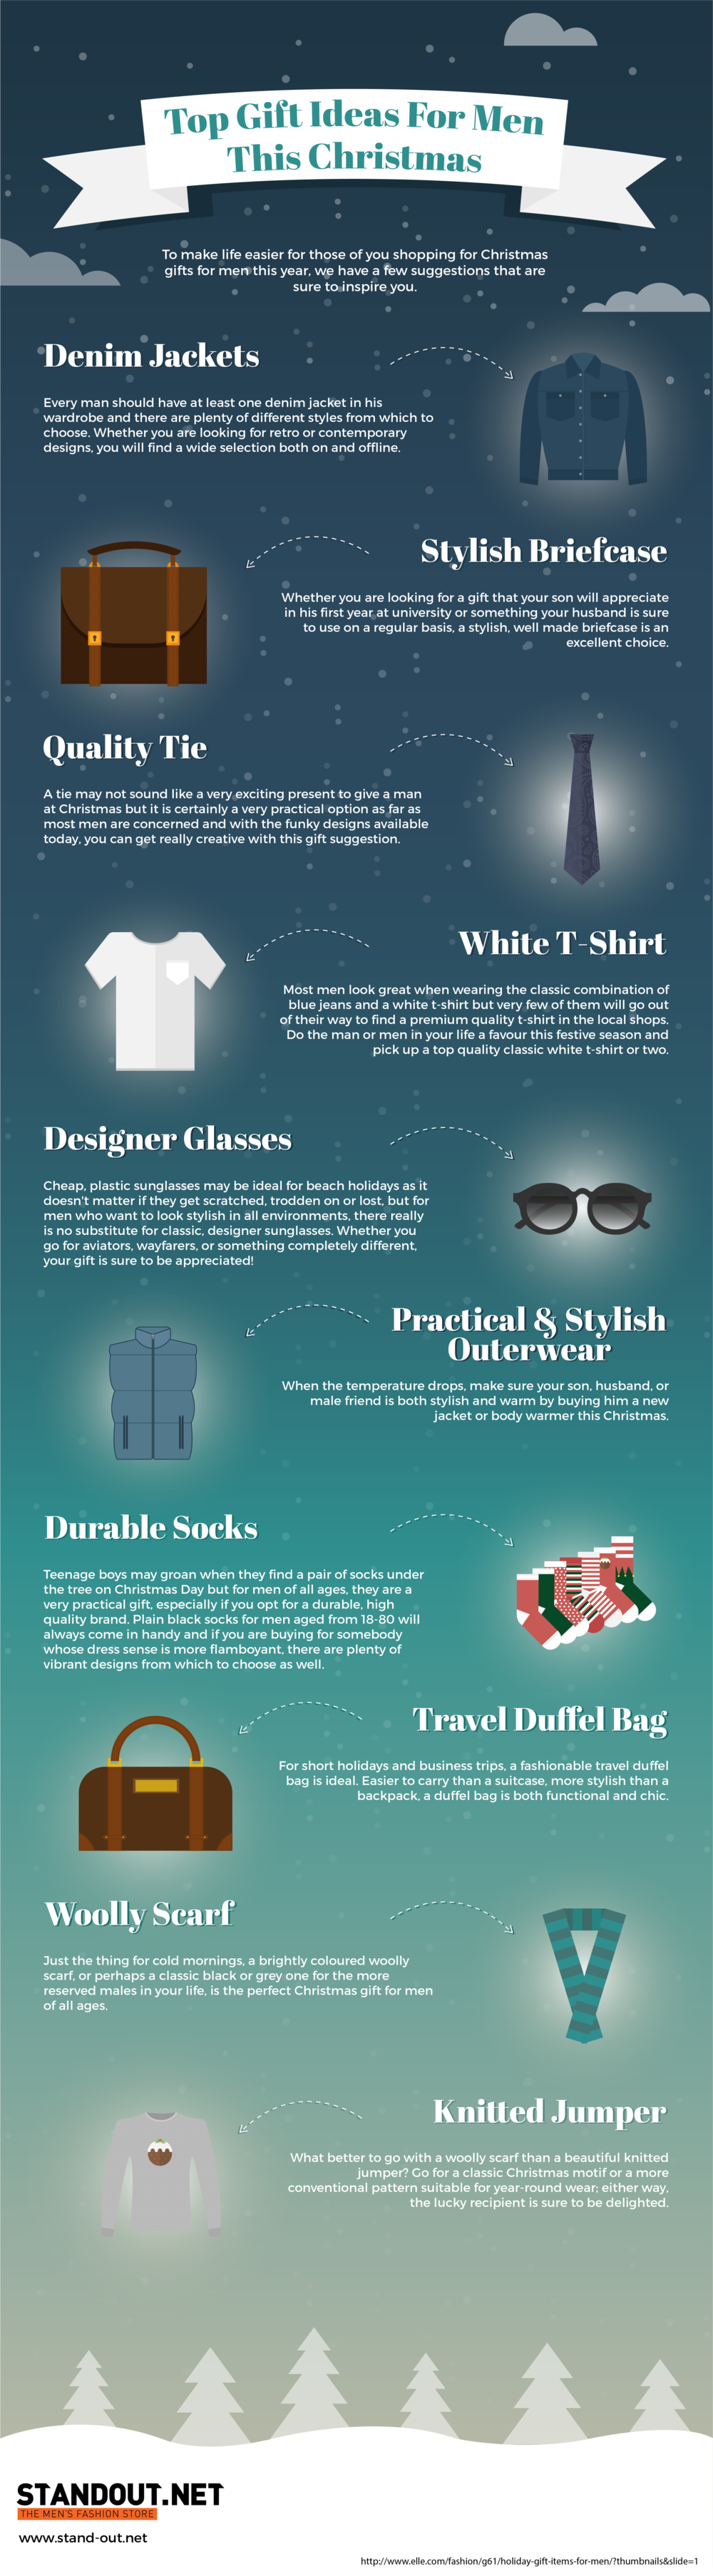 Top Gift Ideas For Men This Christmas [Infographic]